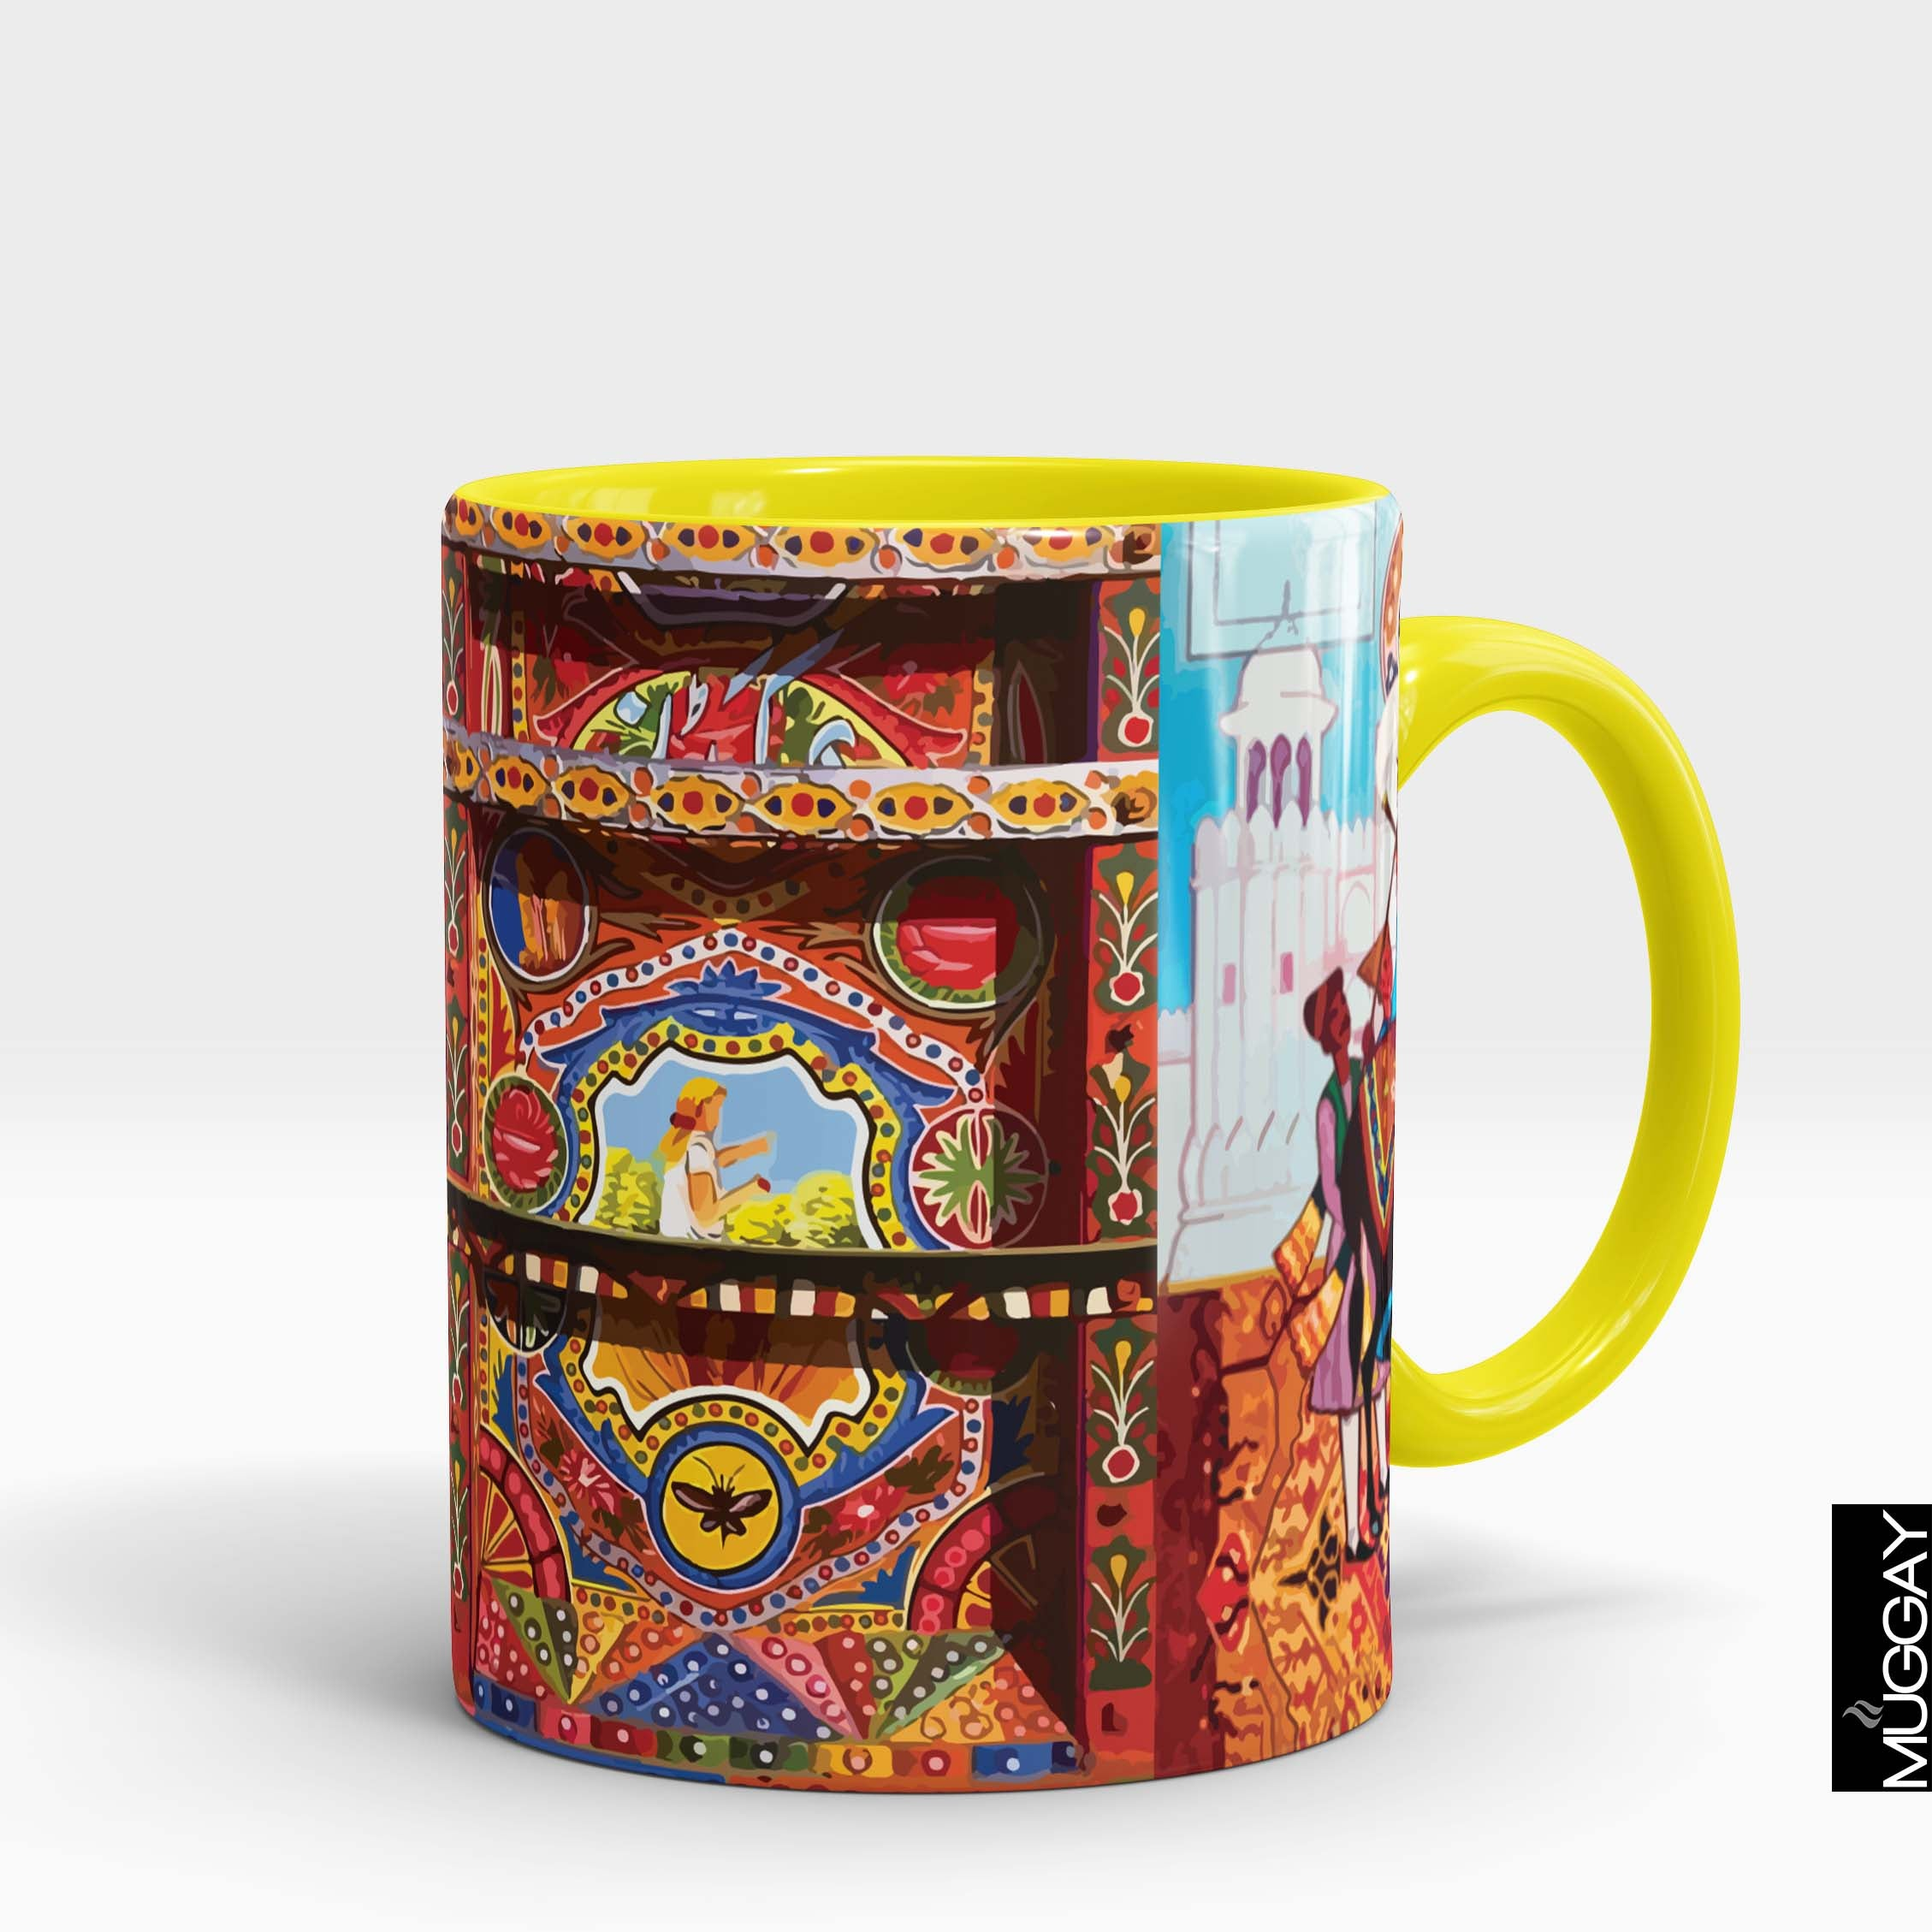 Truck Art Mugs - Pakistan Special - Truck Art